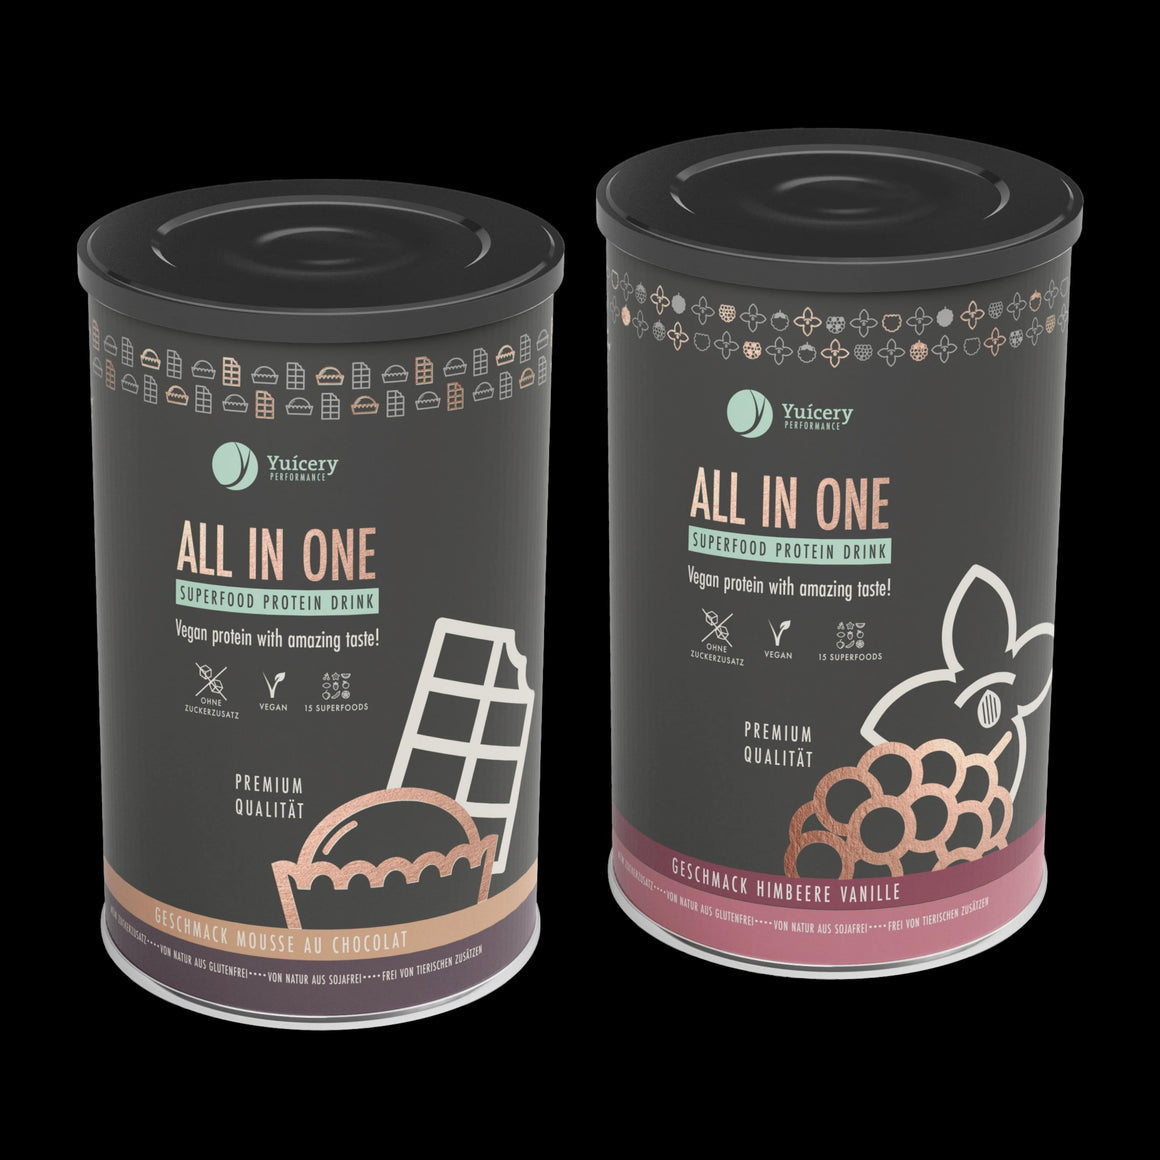 ALL IN ONE Superfood Protein Drink